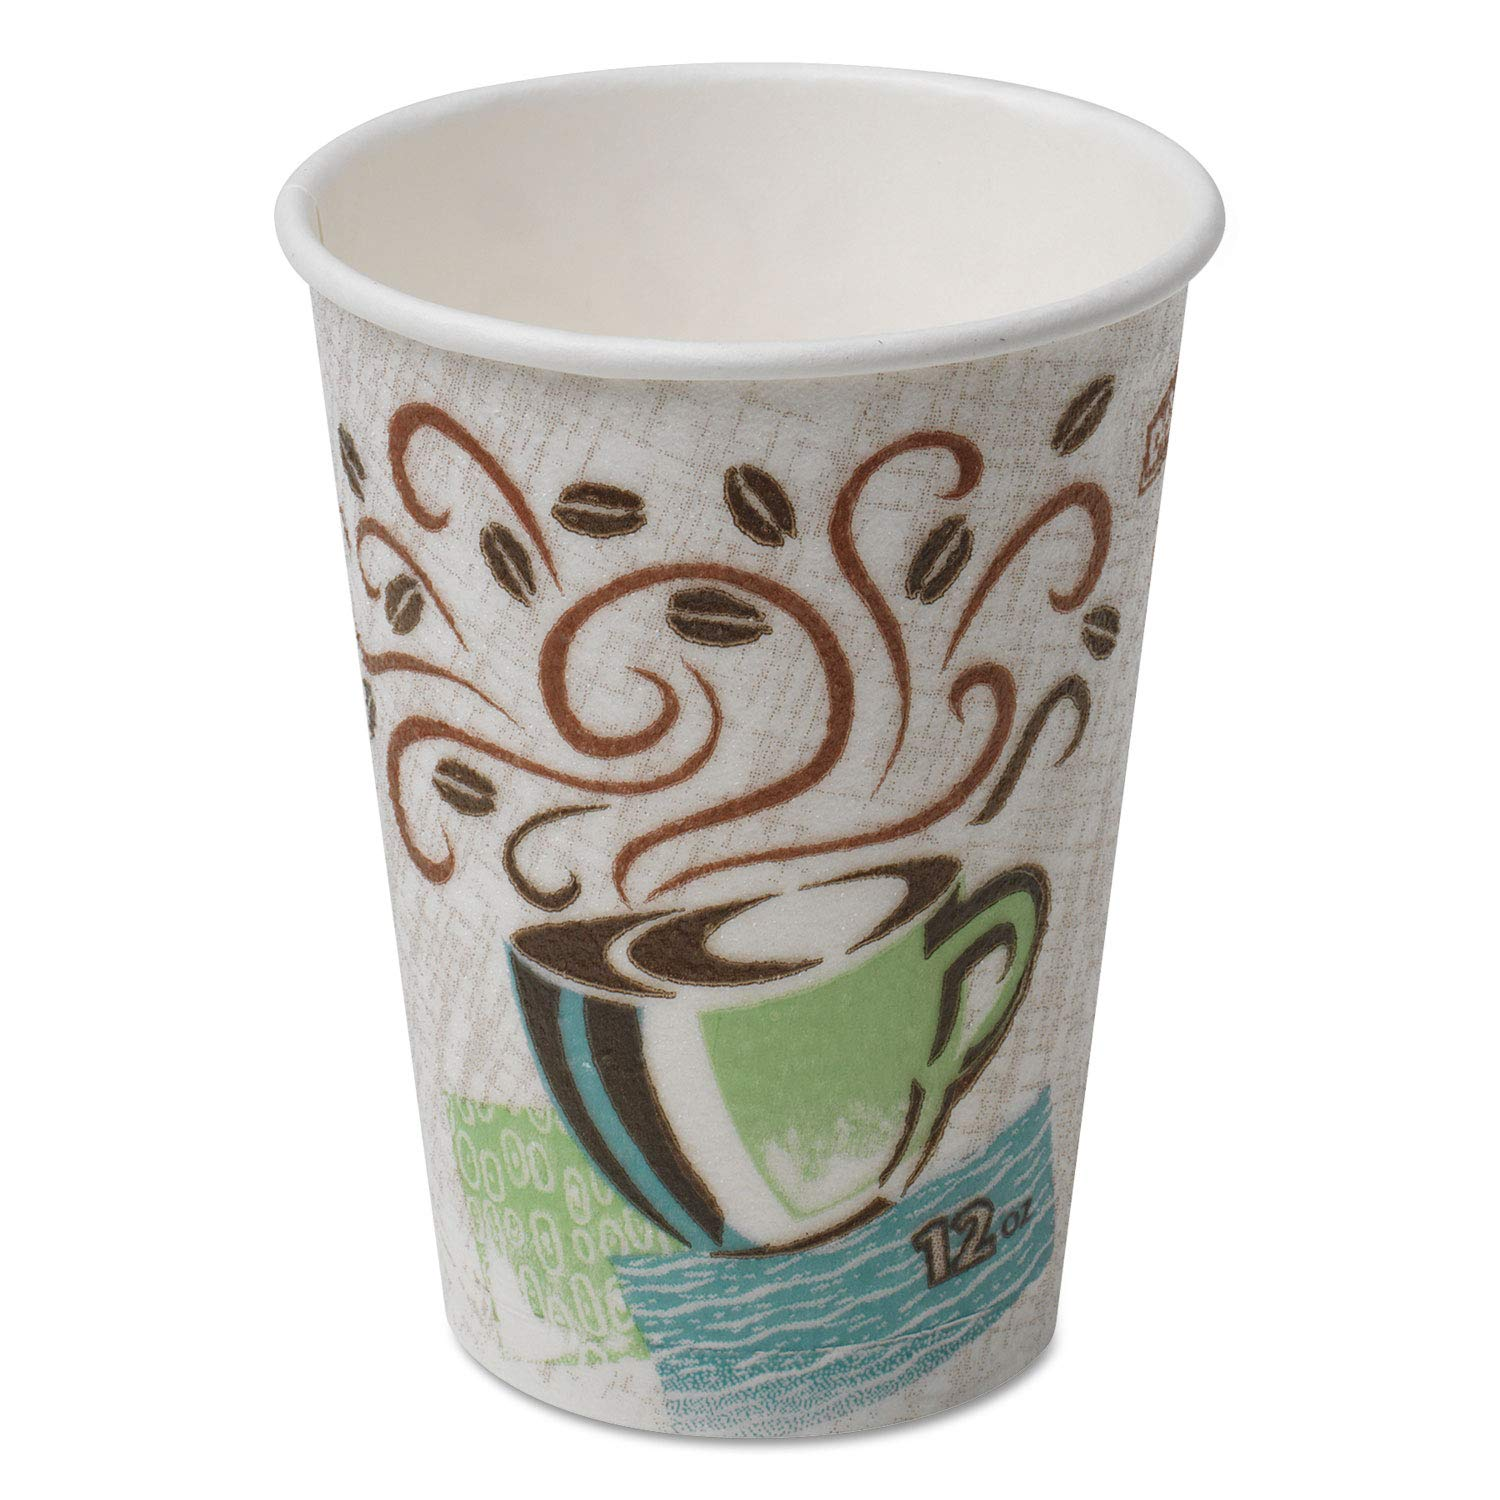 Dixie PerfecTouch Insulated Paper Hot Coffee Cup by GP PRO